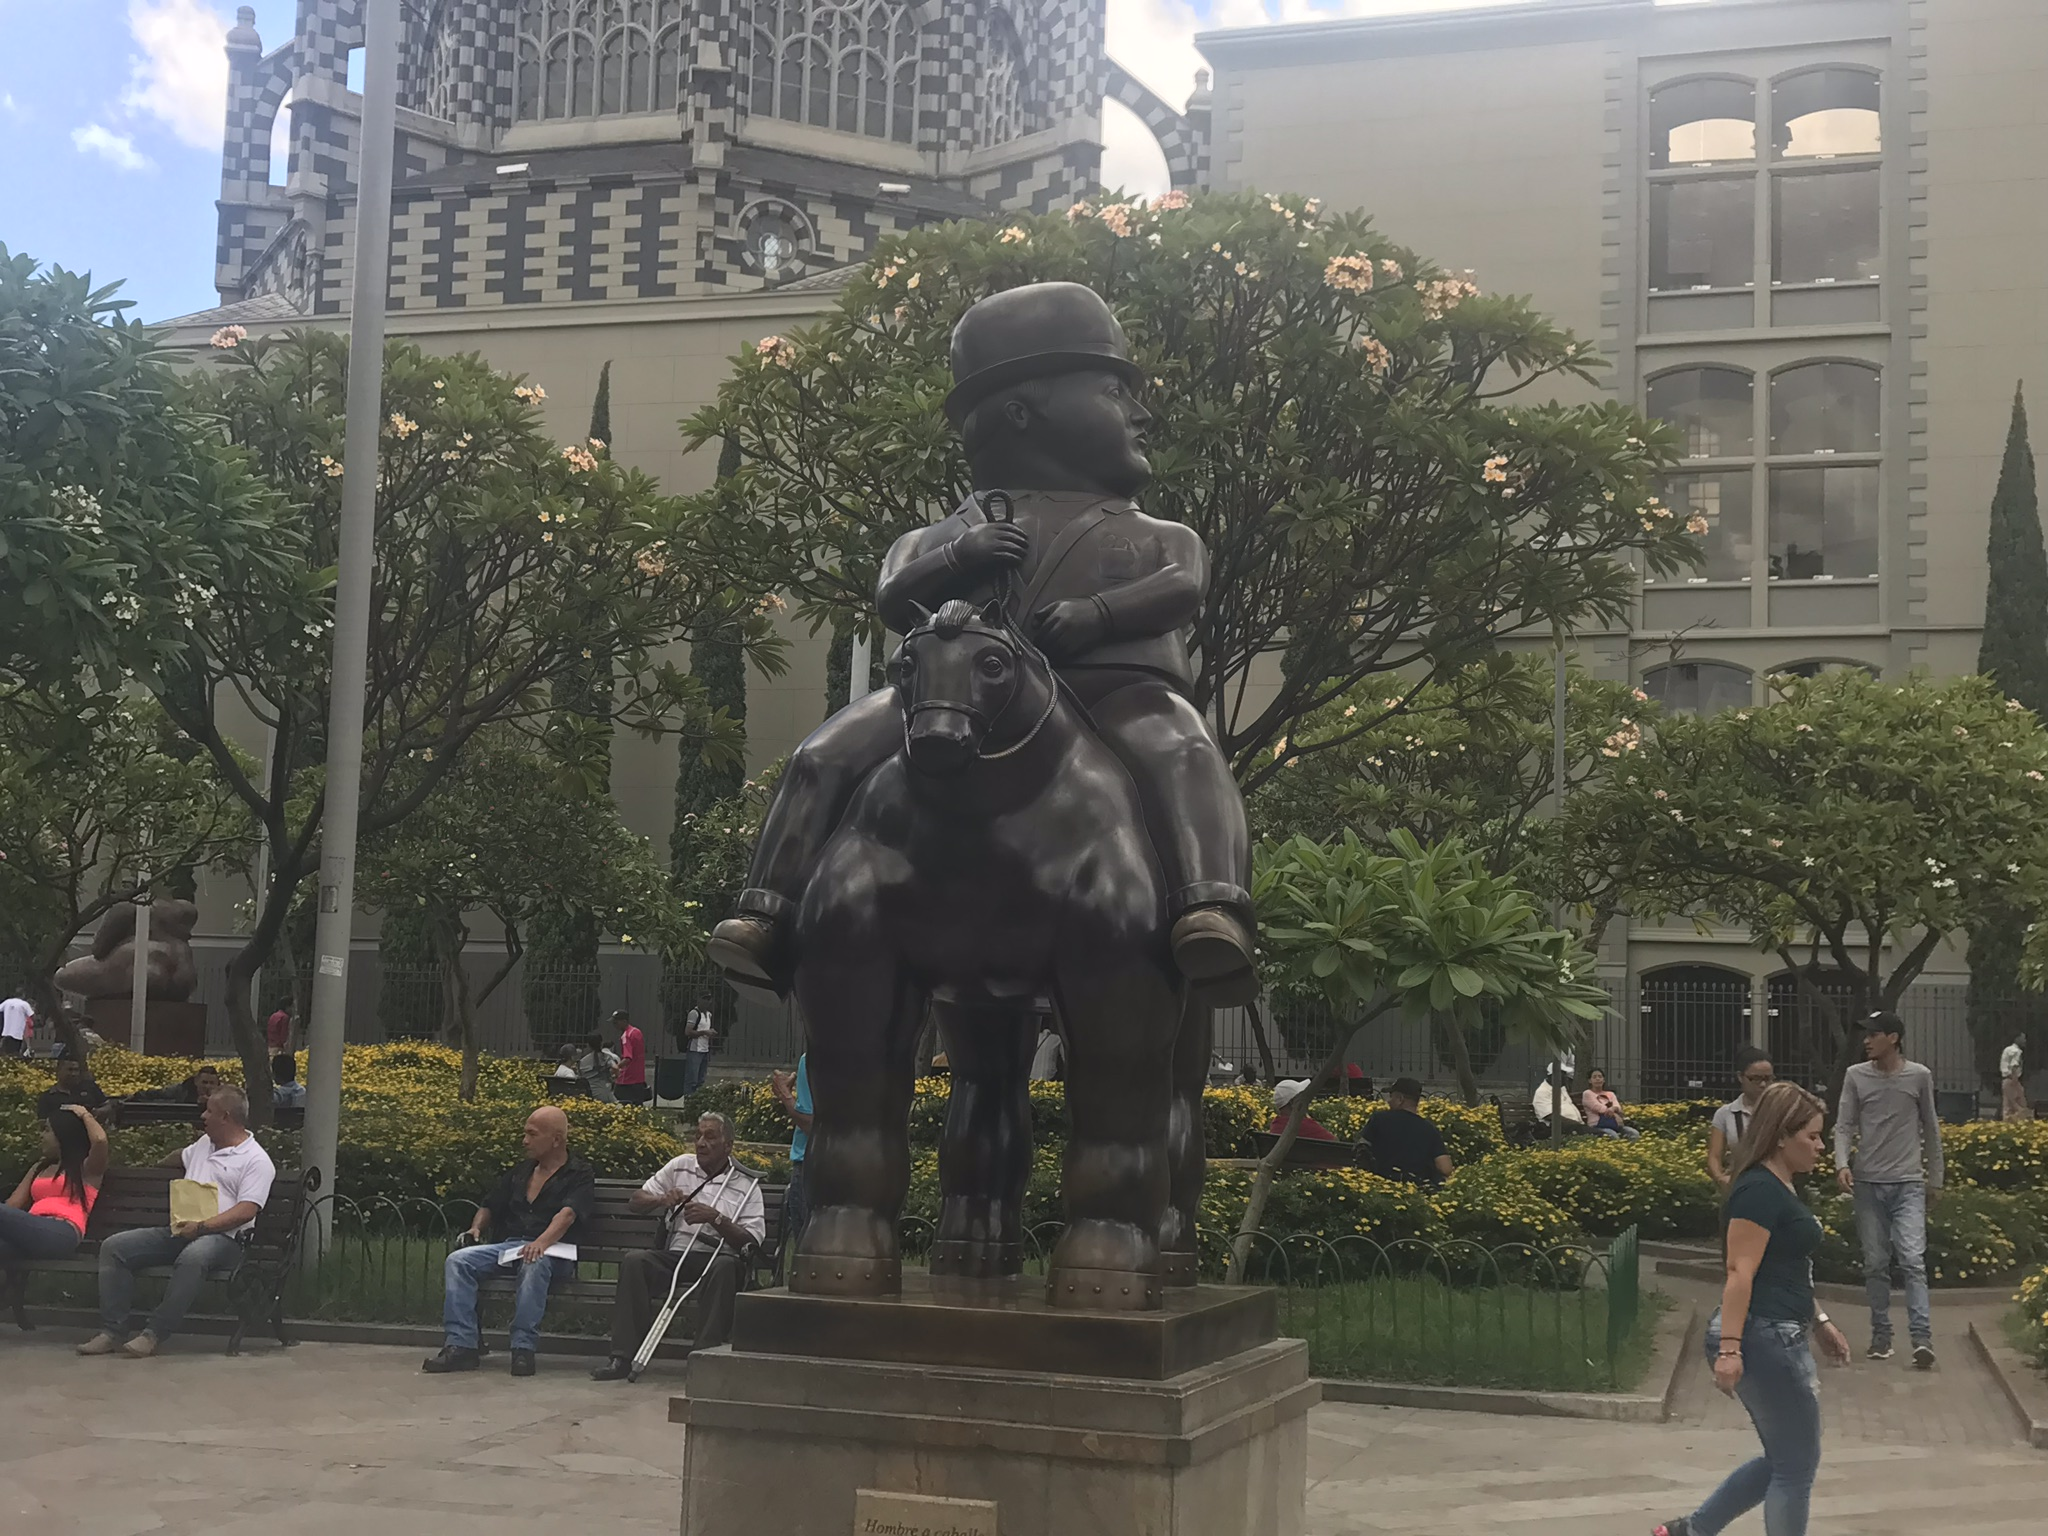 medellin downtown pic.jpg